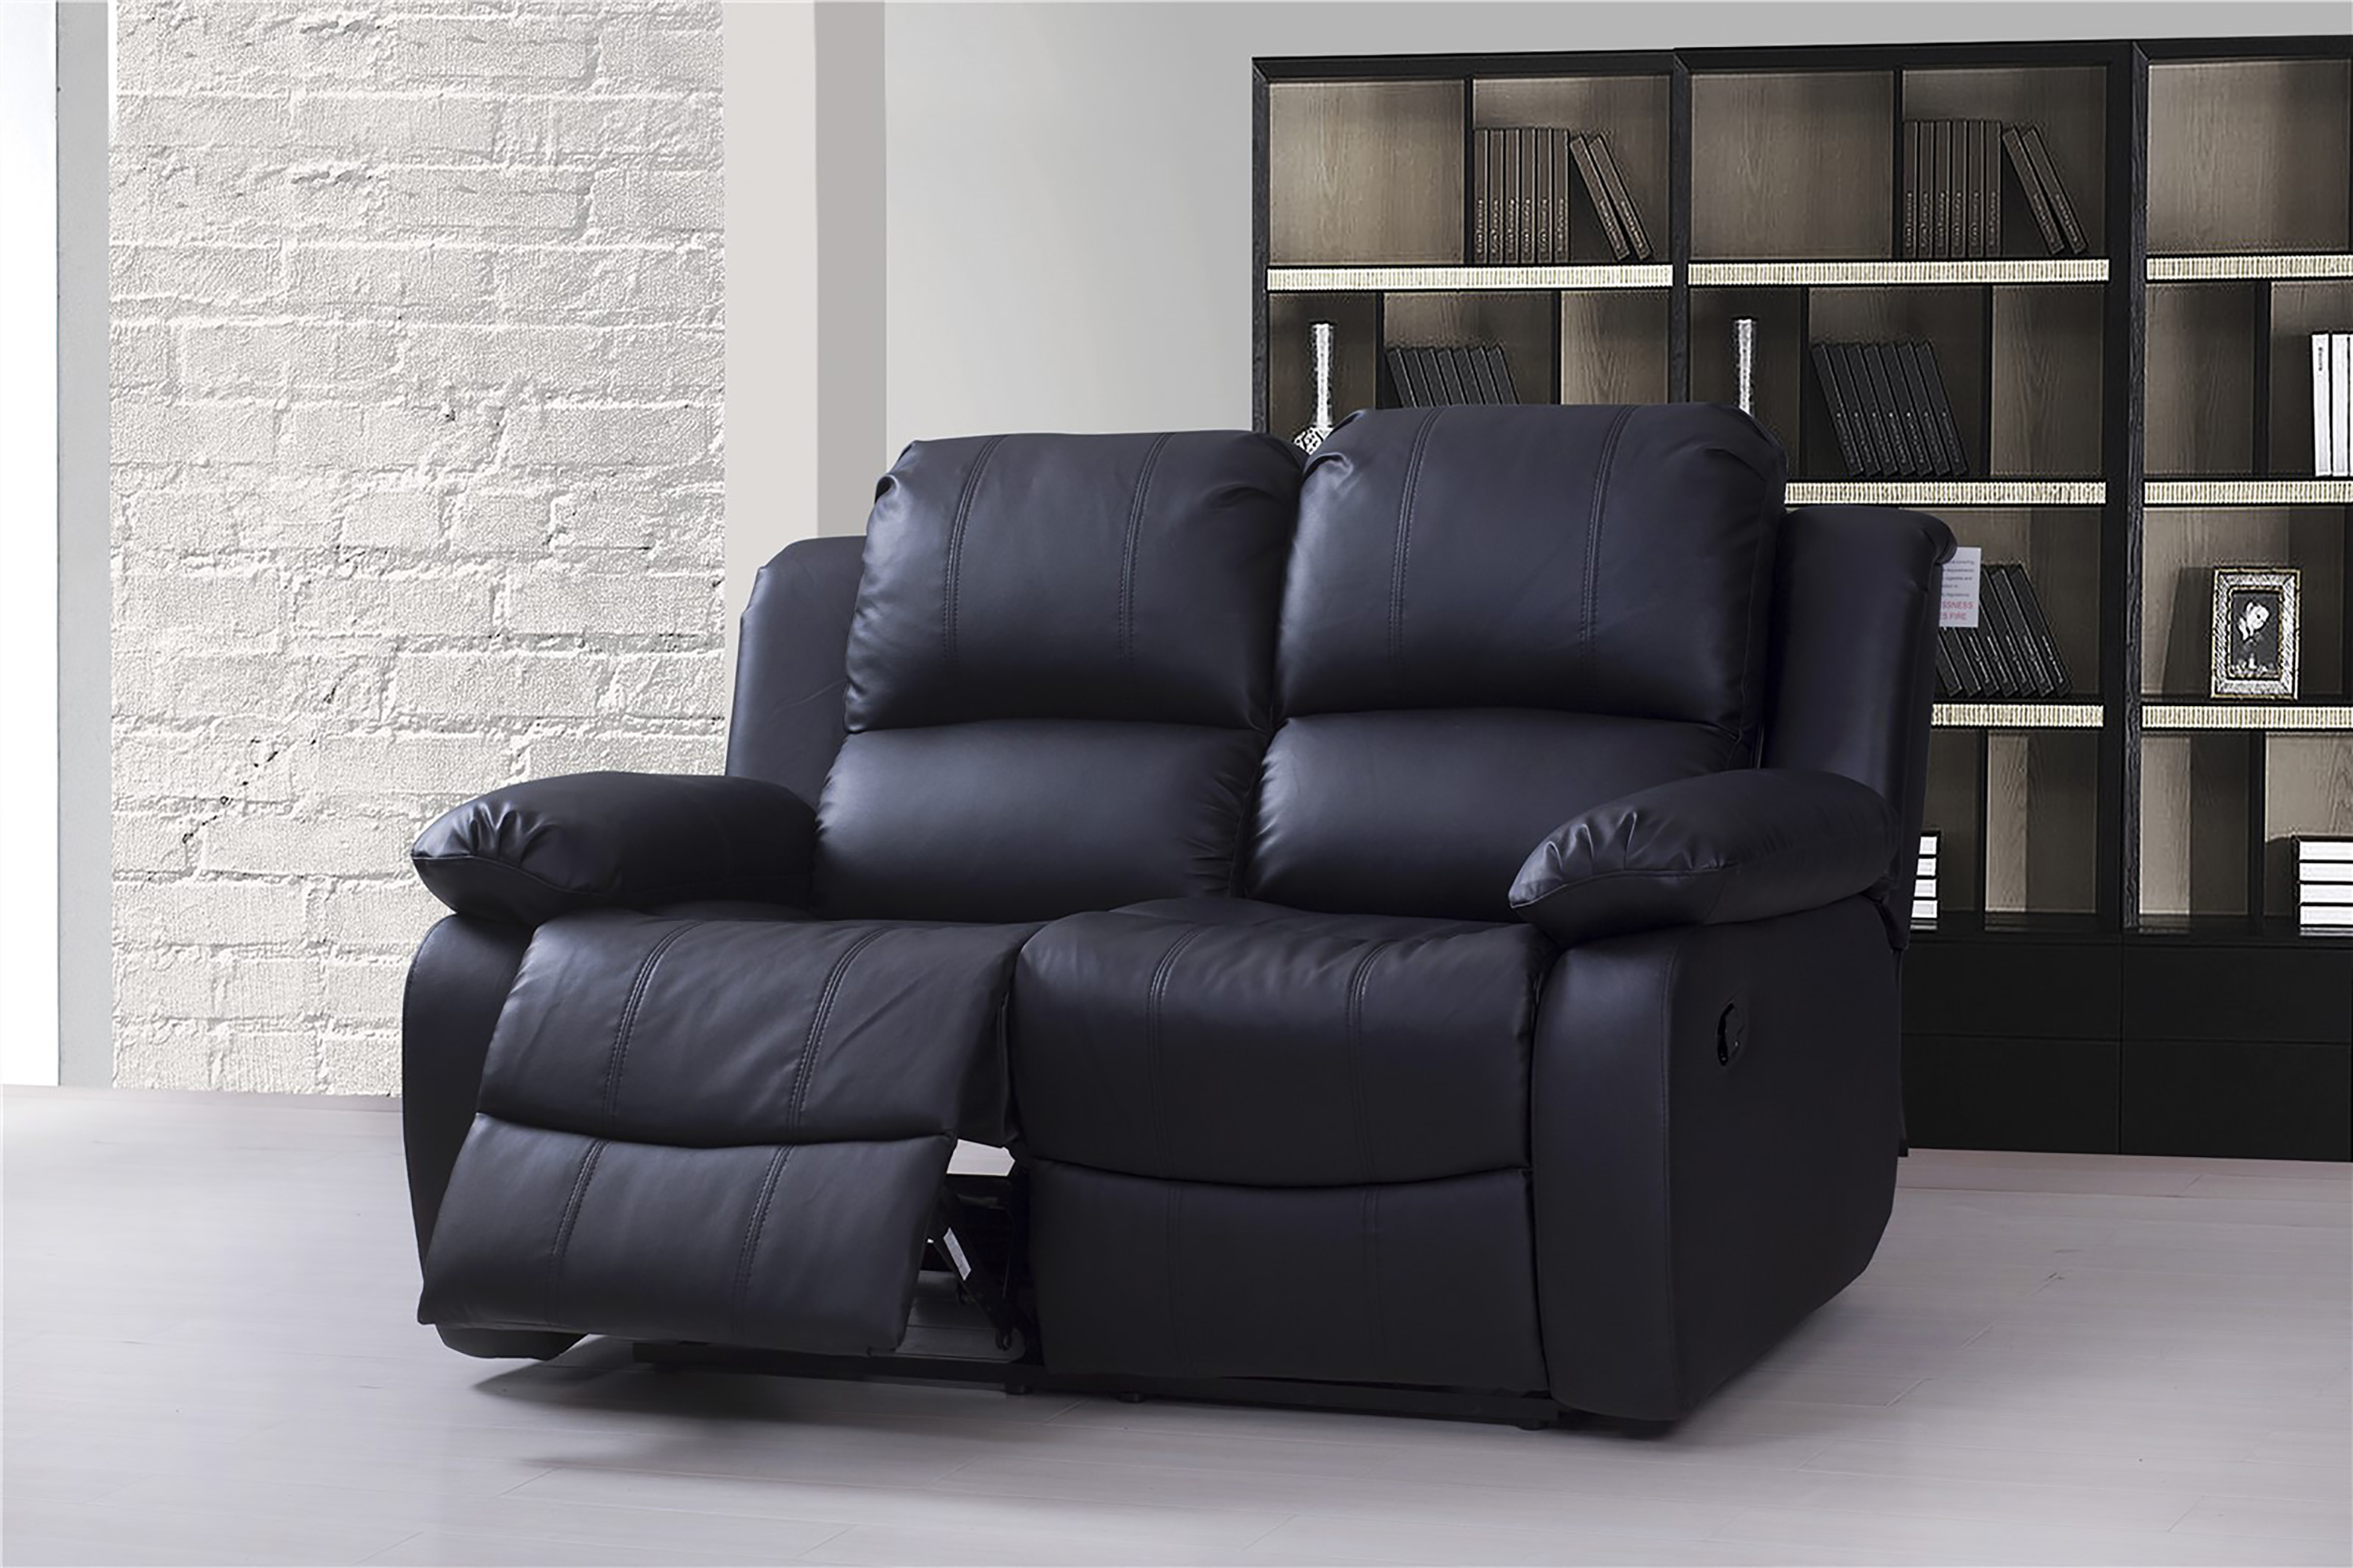 Valencia 2 Seater Bonded Leather Recliner Sofa Black Ebay